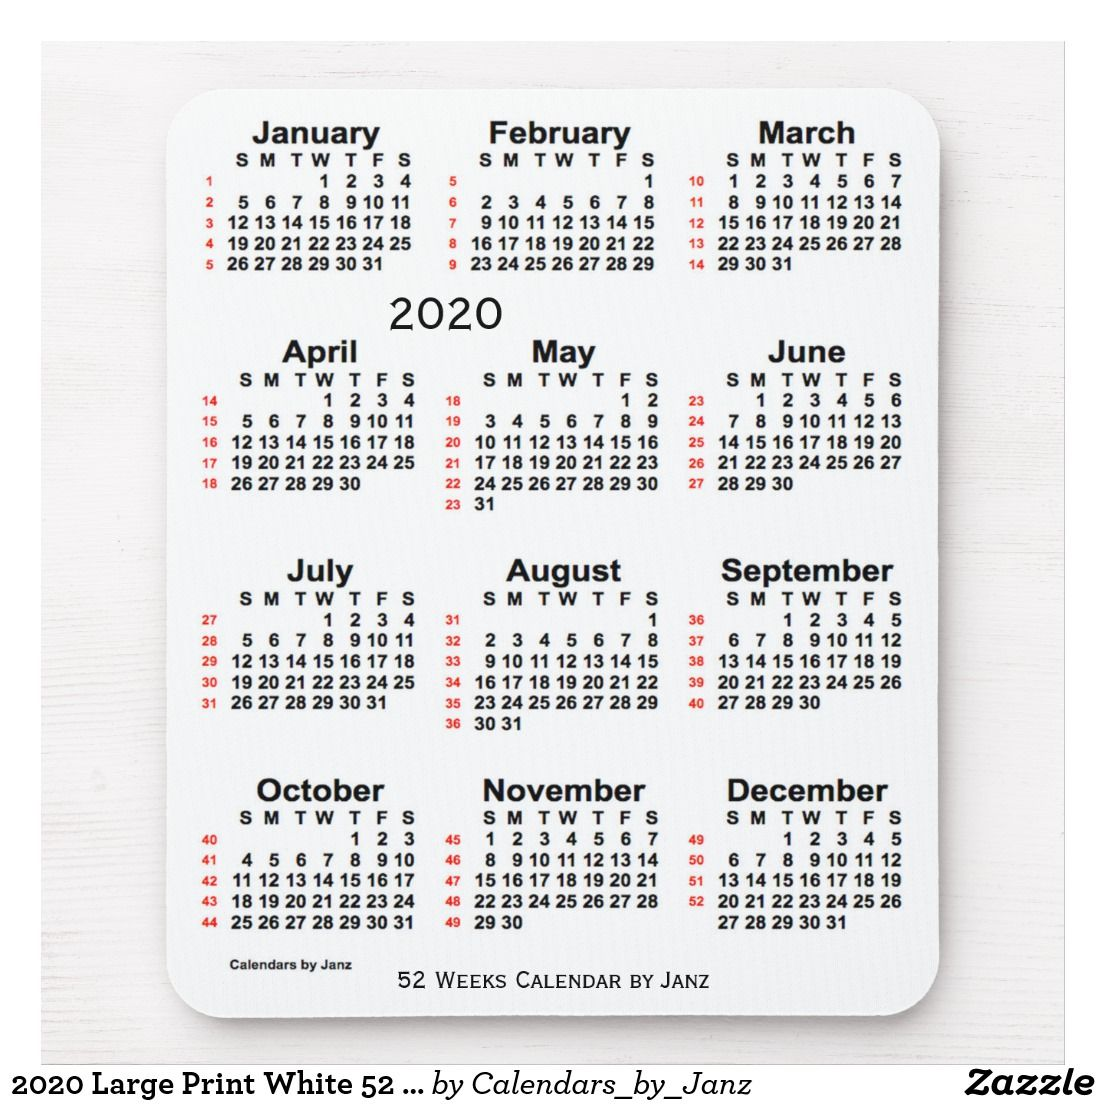 2020 Large Print White 52 Week Calendar By Janz Mouse Pad Zazzle Com Holiday Calendar Weekly Calendar Custom Calendar